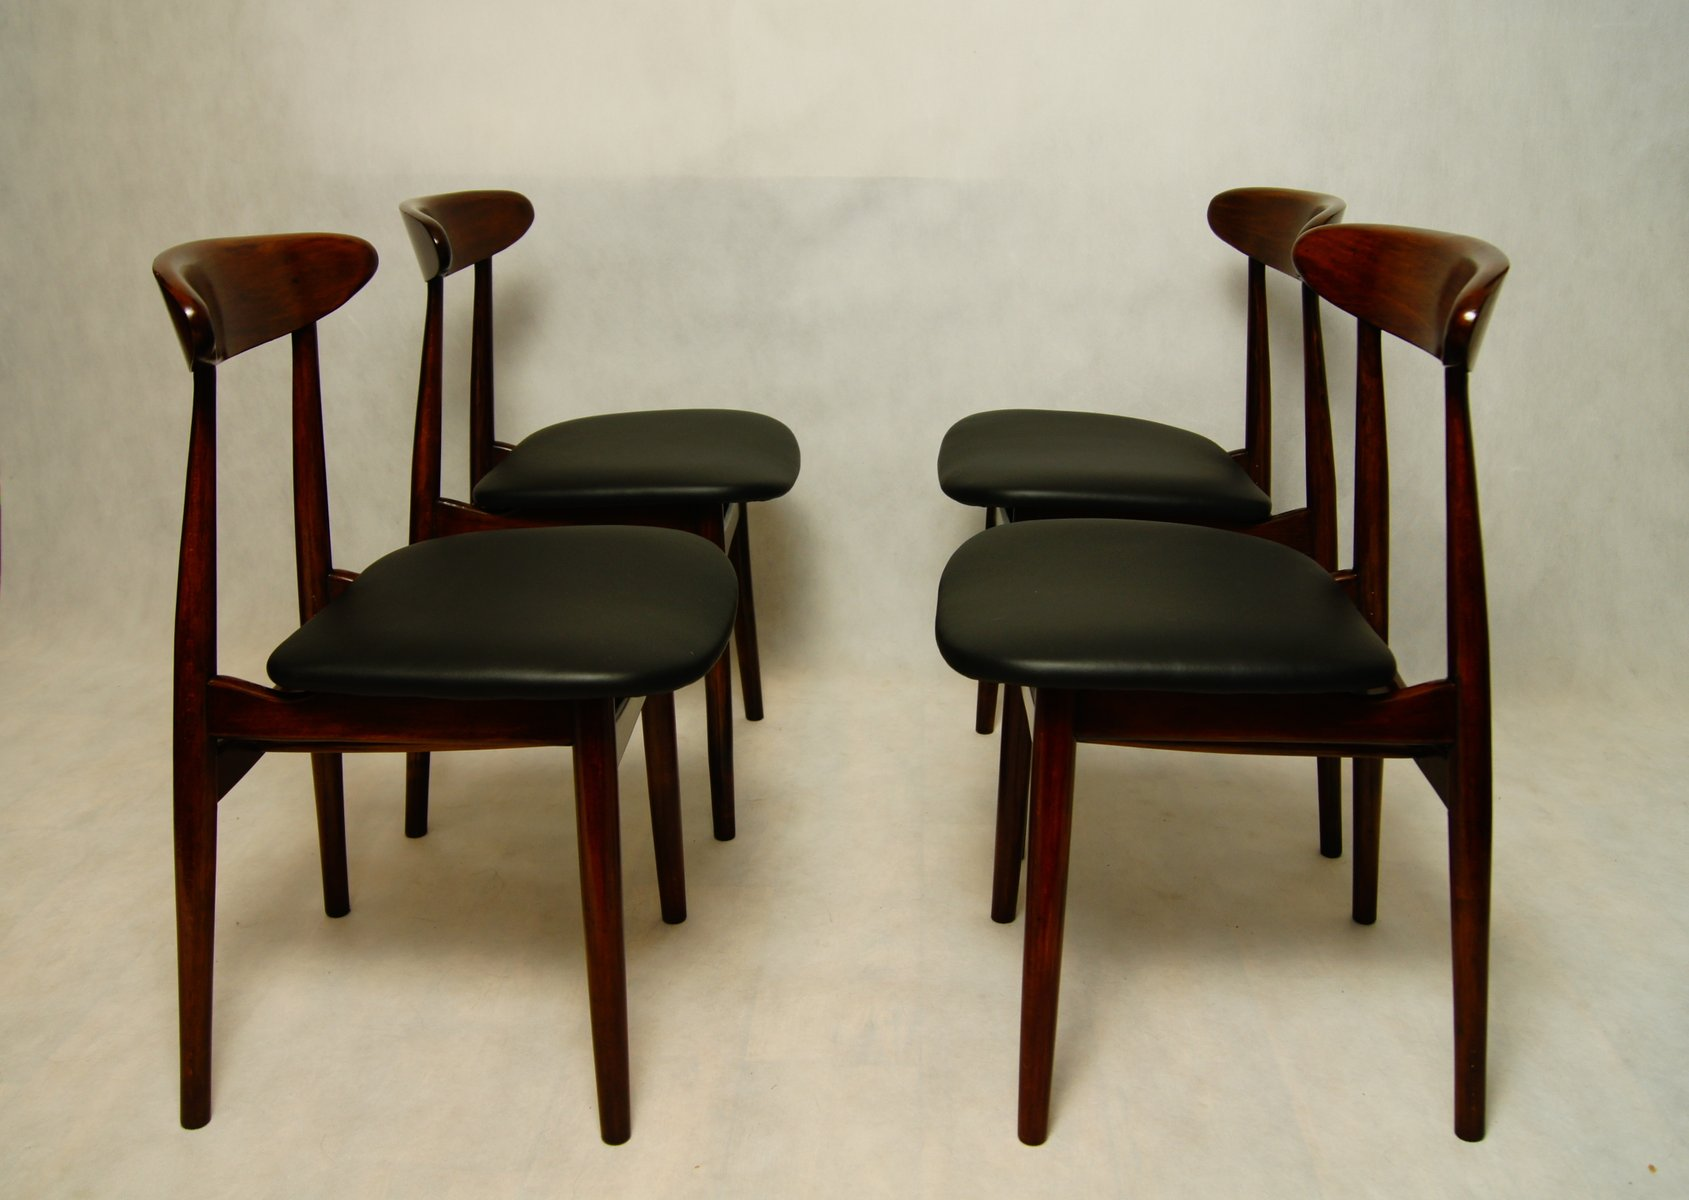 vintage type 5912 polish dining chairs from zamojskie